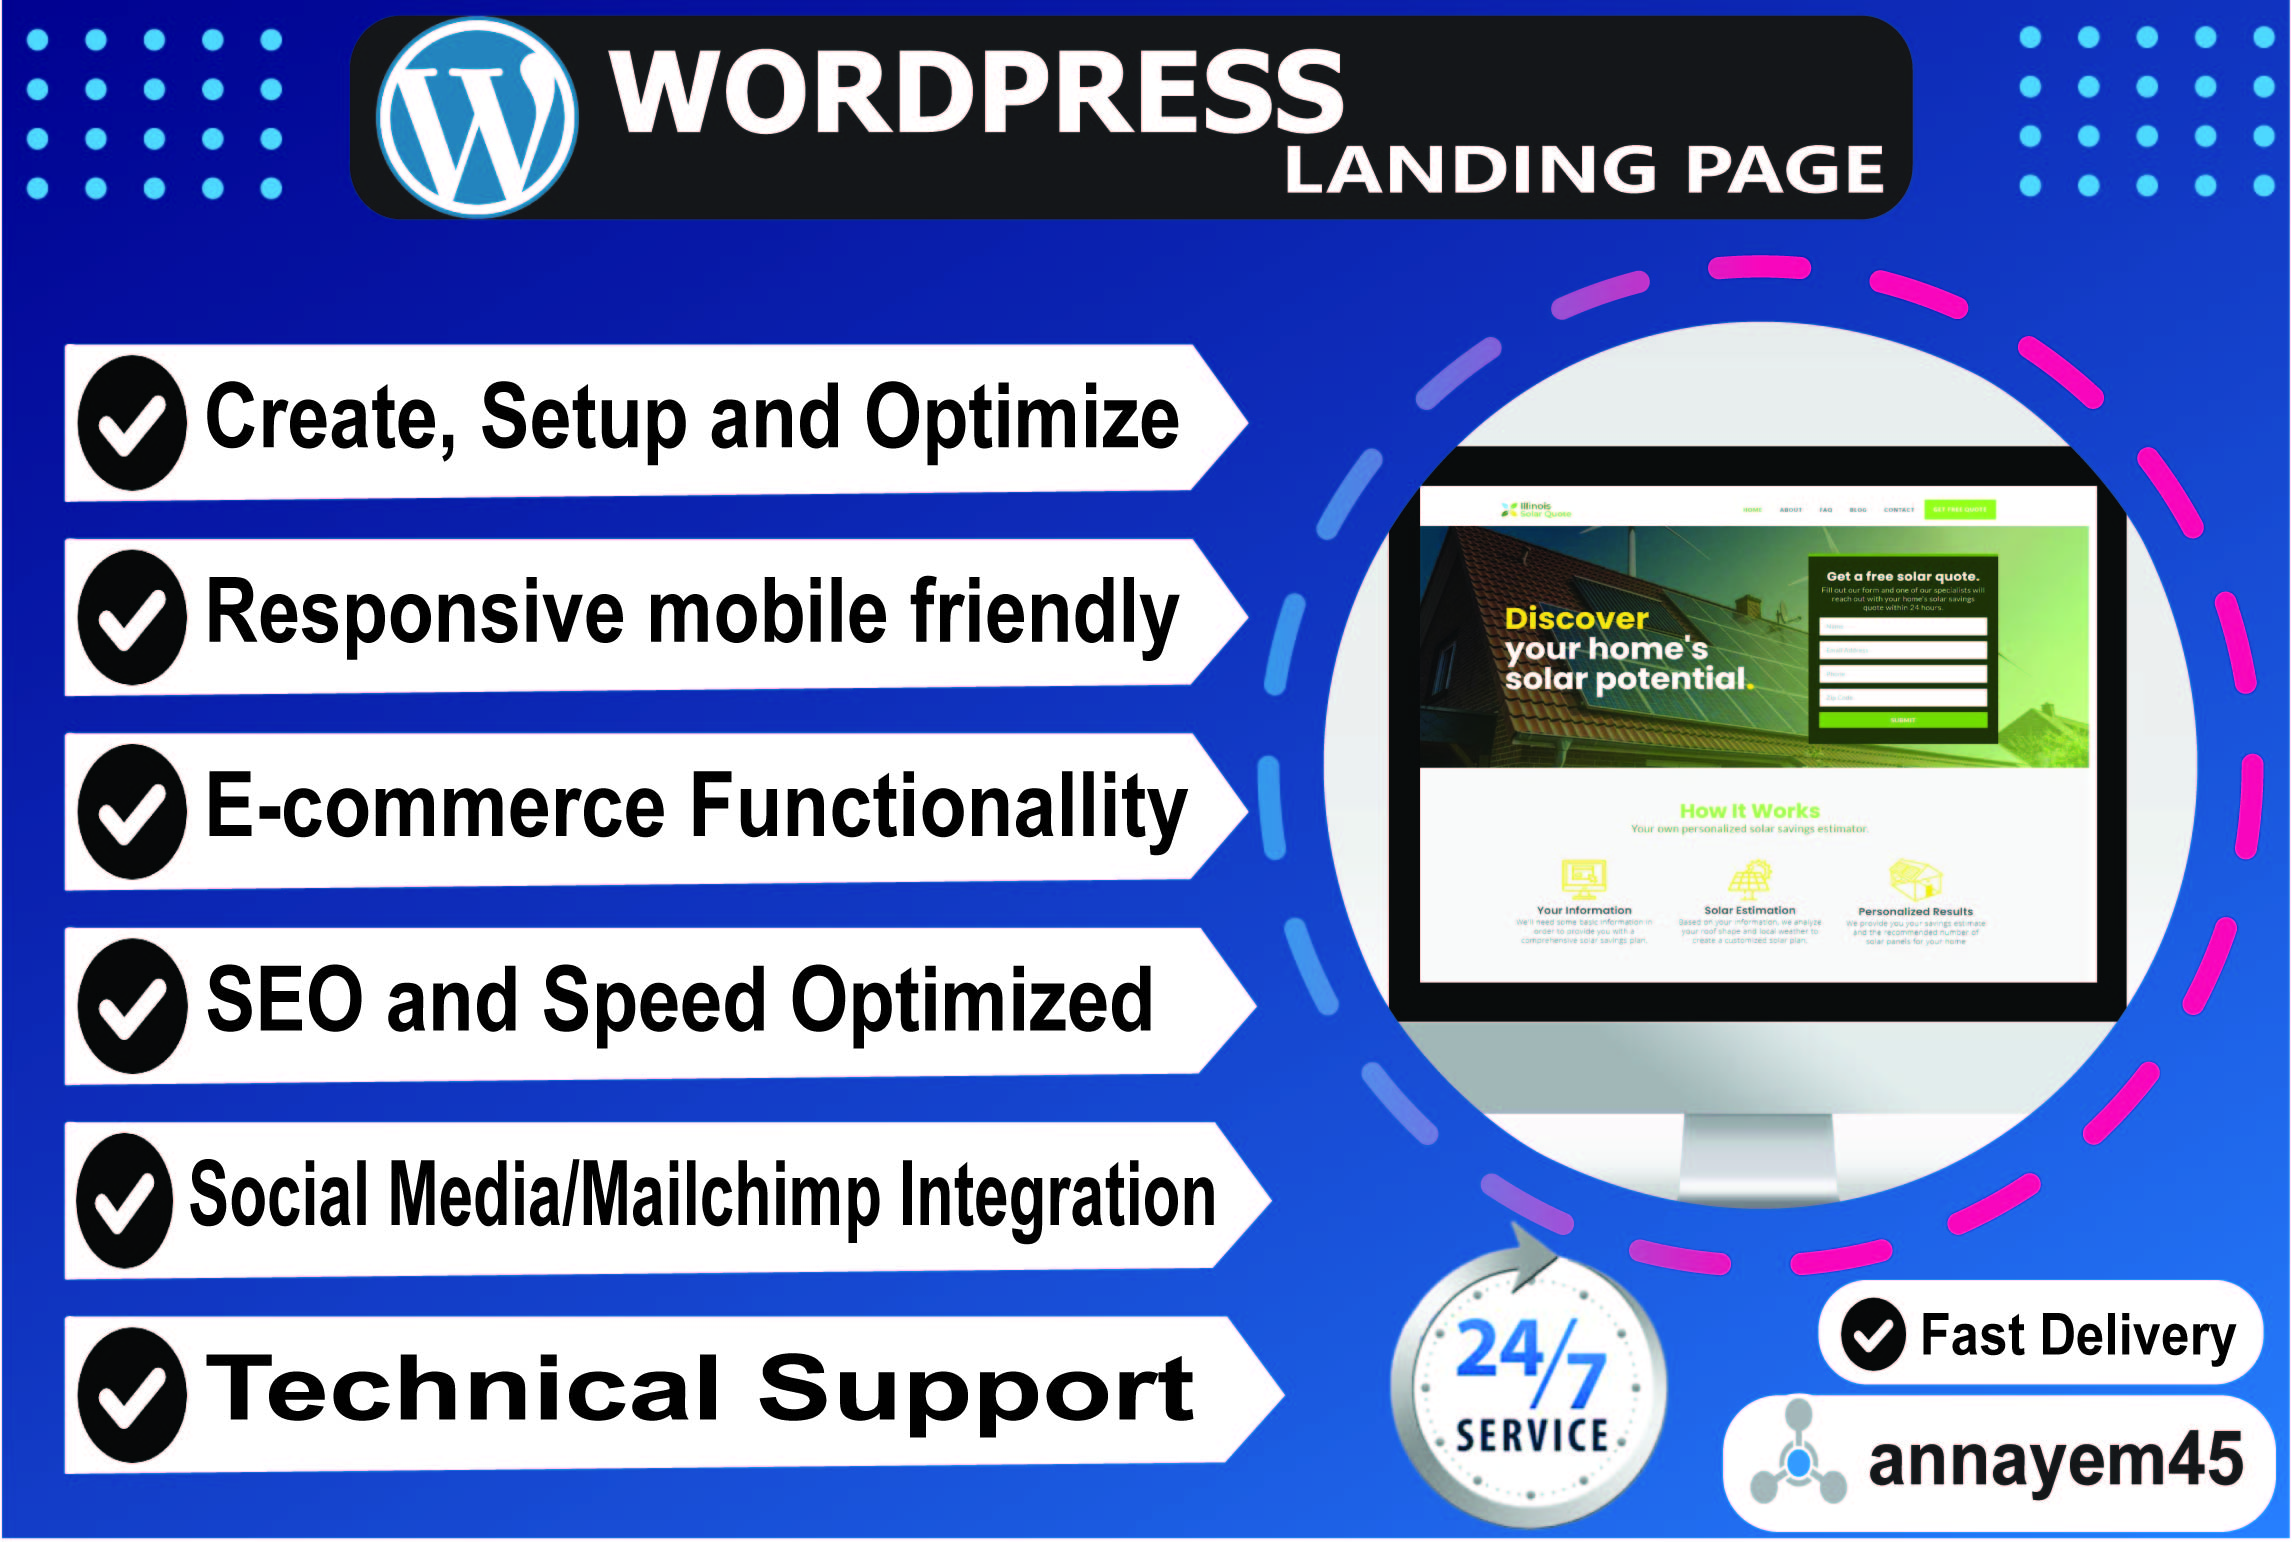 I will design wordpress landing page or elementor landing page upto 5-section